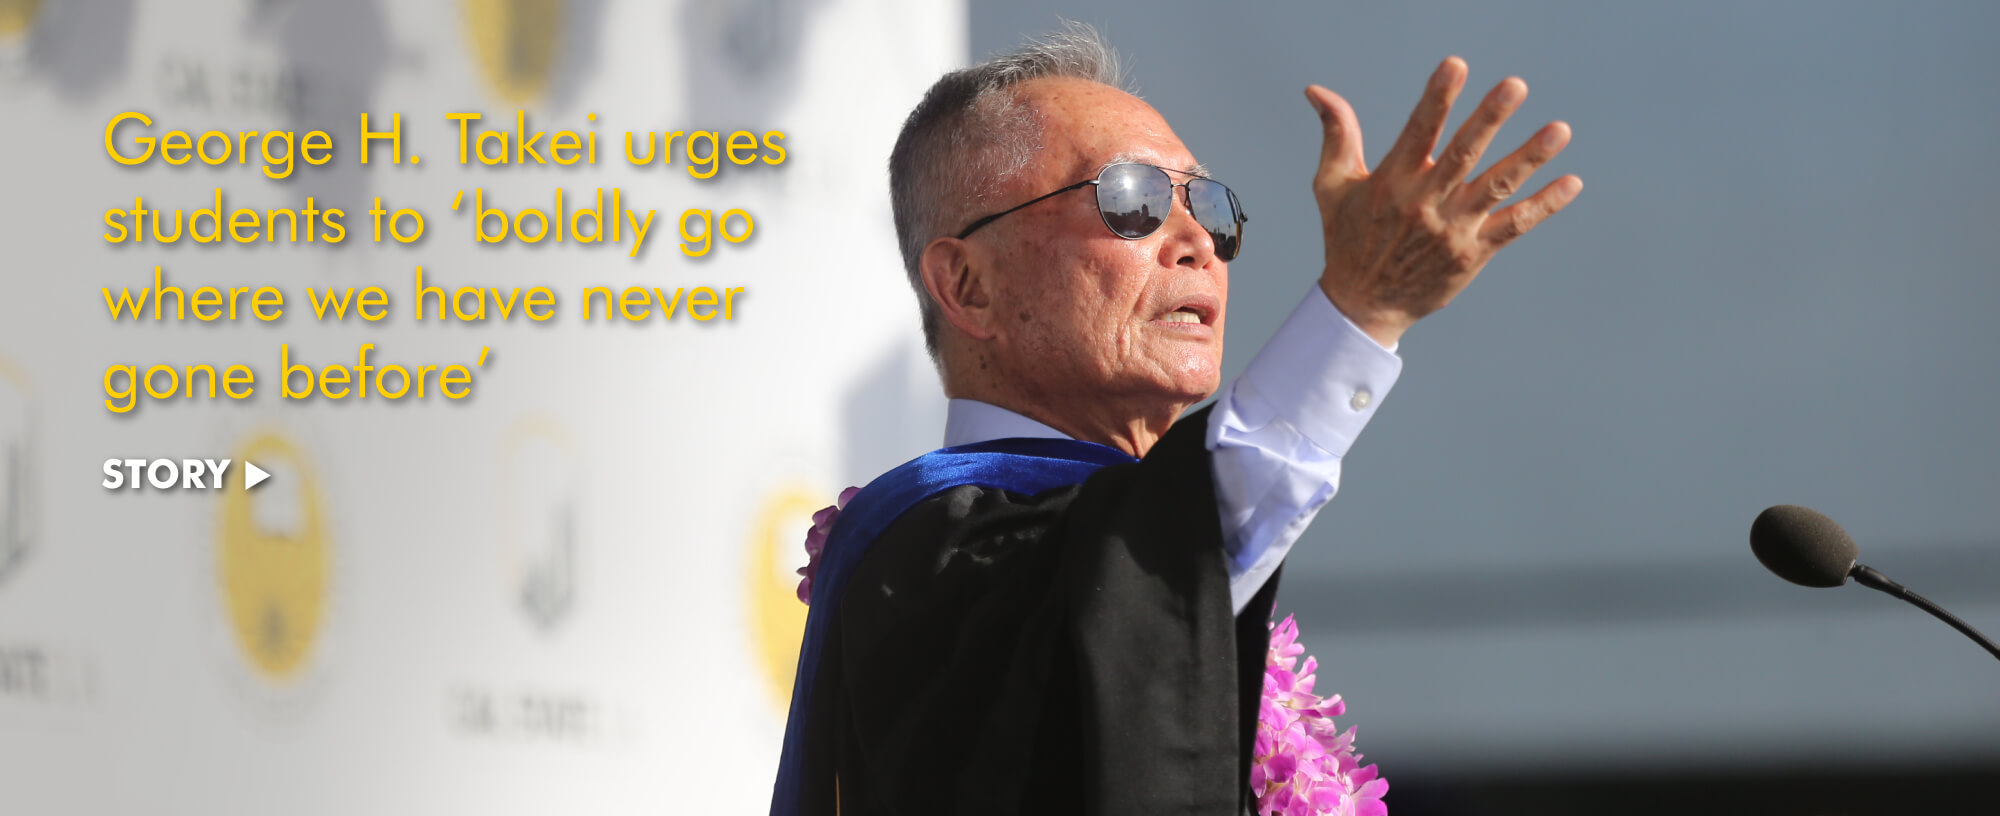 "George H. Takei urges students to ""boldly go where we have never gone before"""